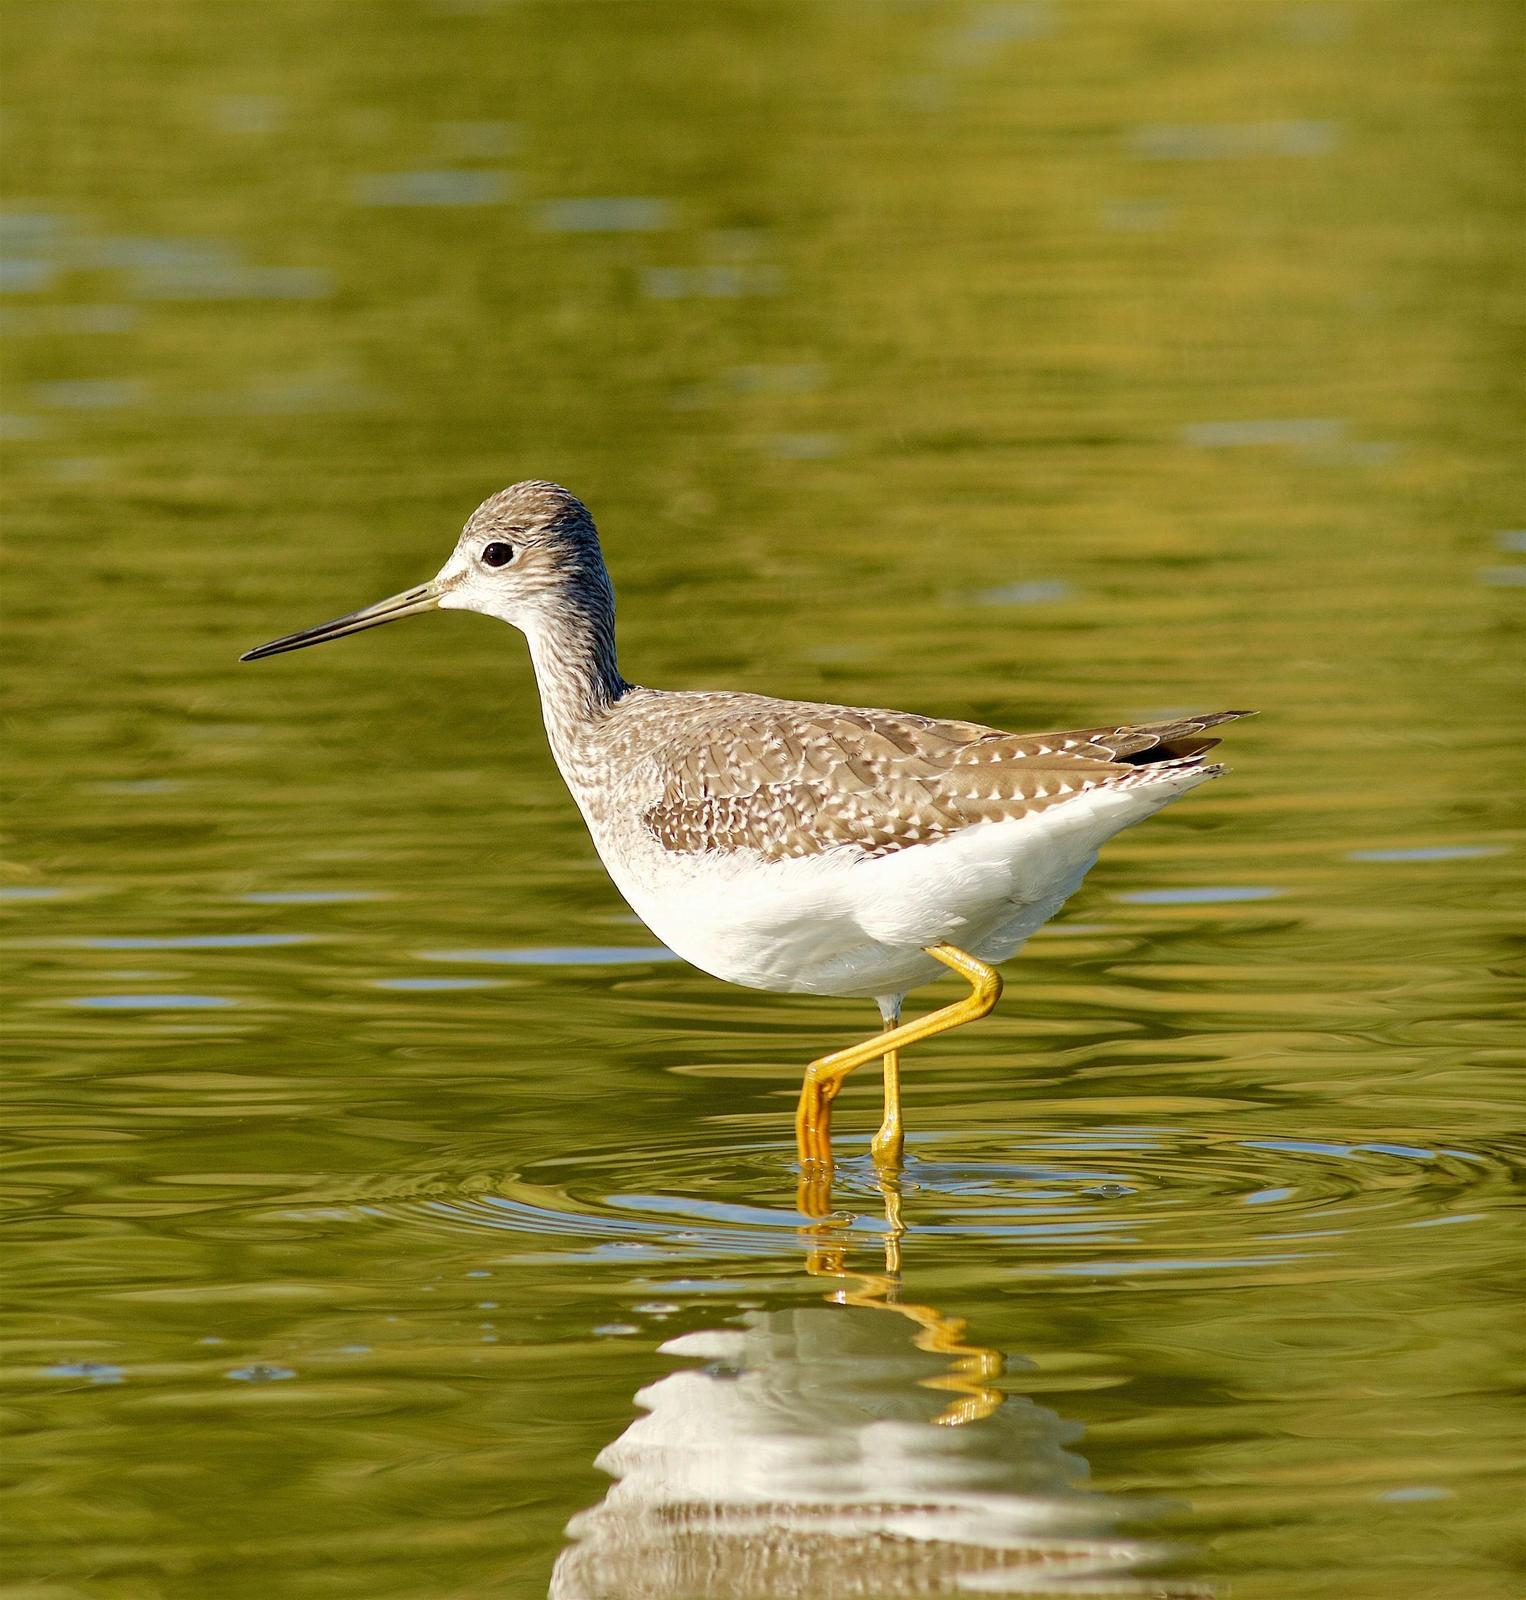 Greater Yellowlegs Photo by Kathryn Keith